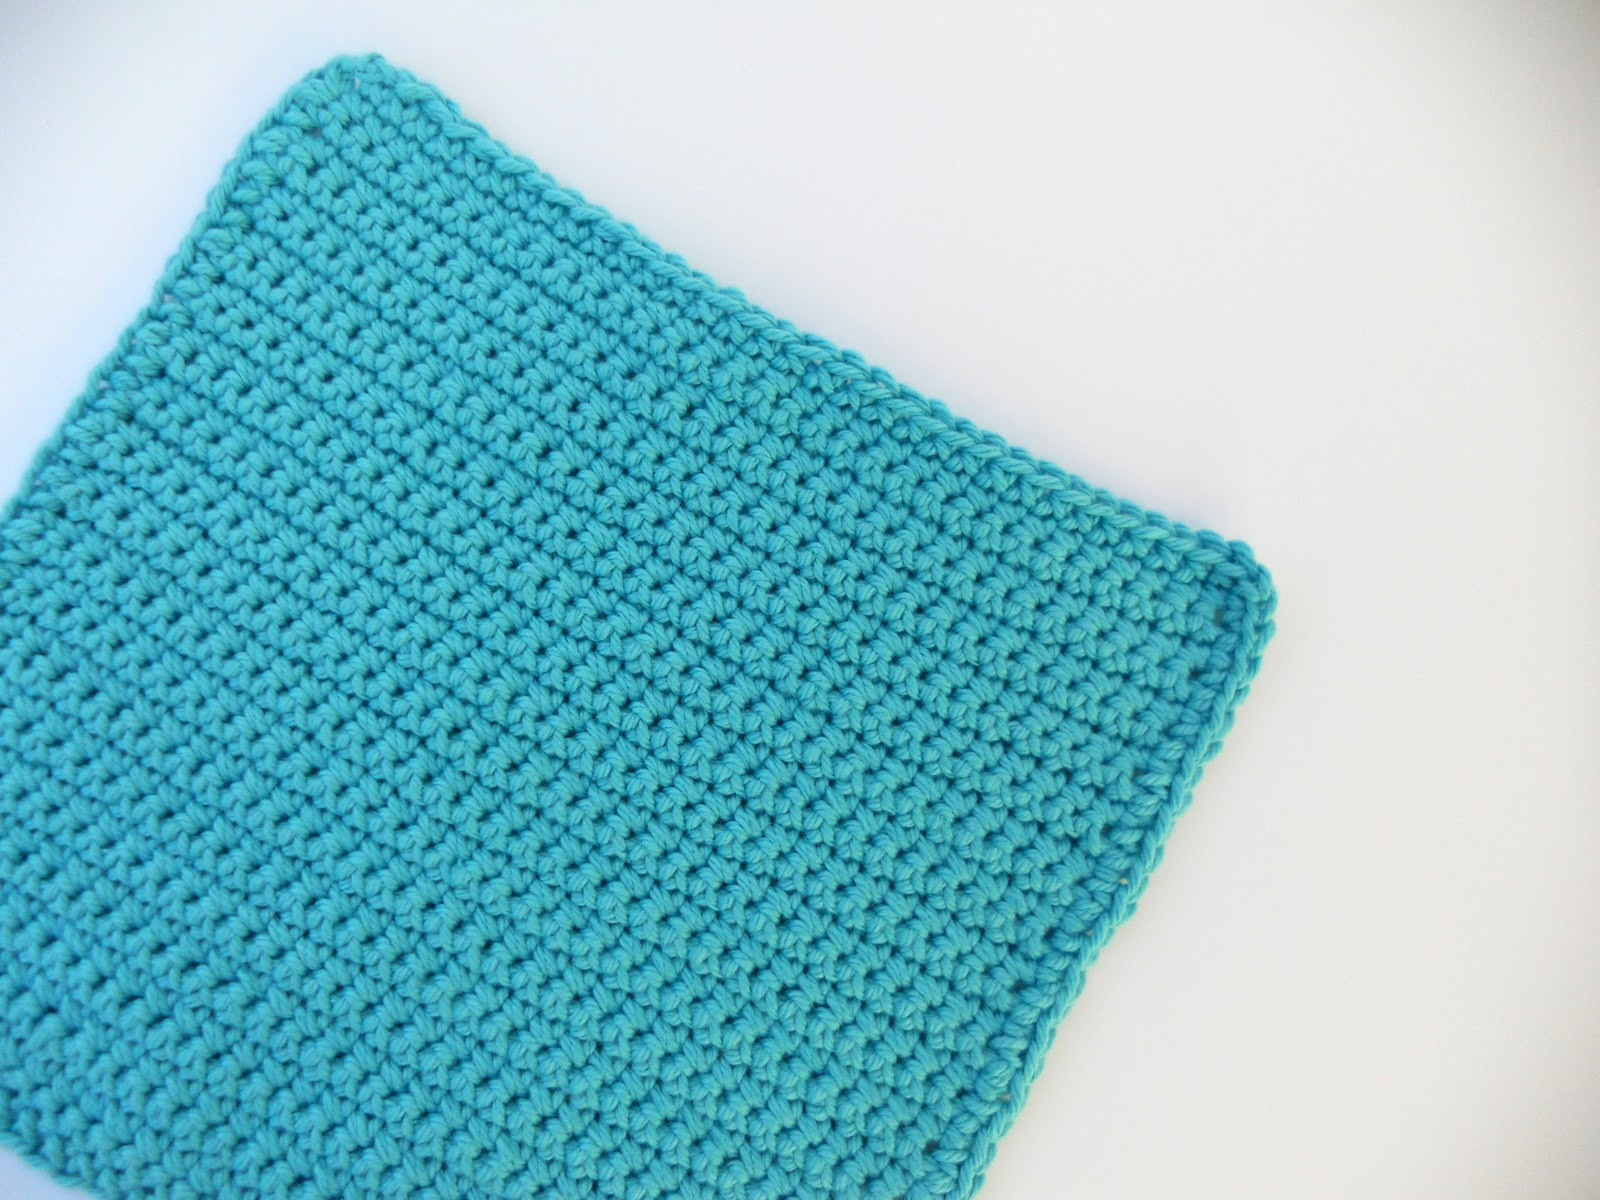 Just Another Hang Up Cotton Crocheted Dishcloths